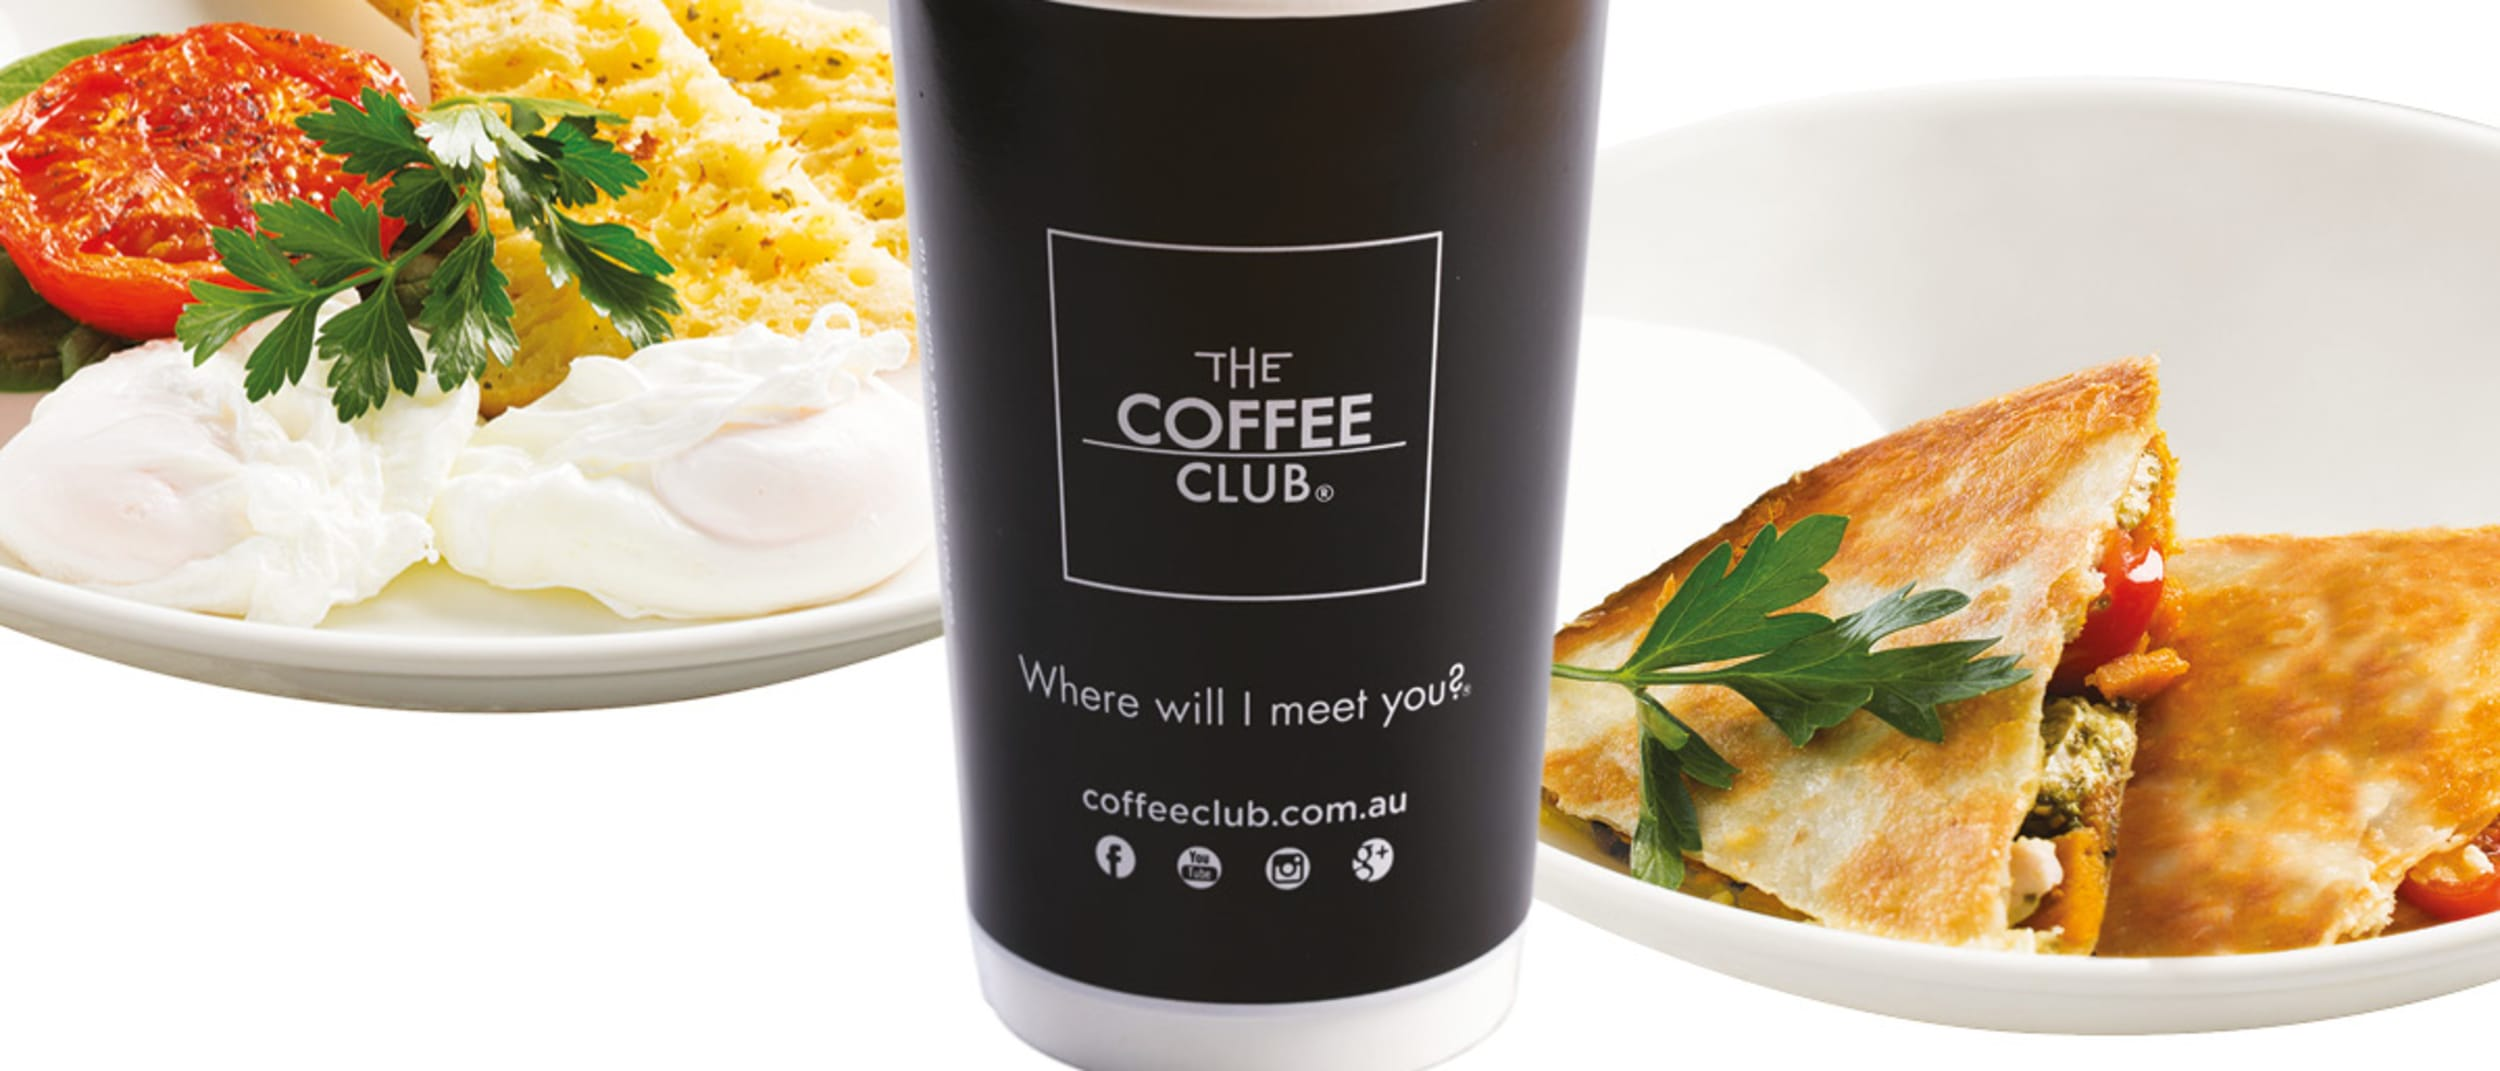 The Coffee Club has something special for you - It's no typo!